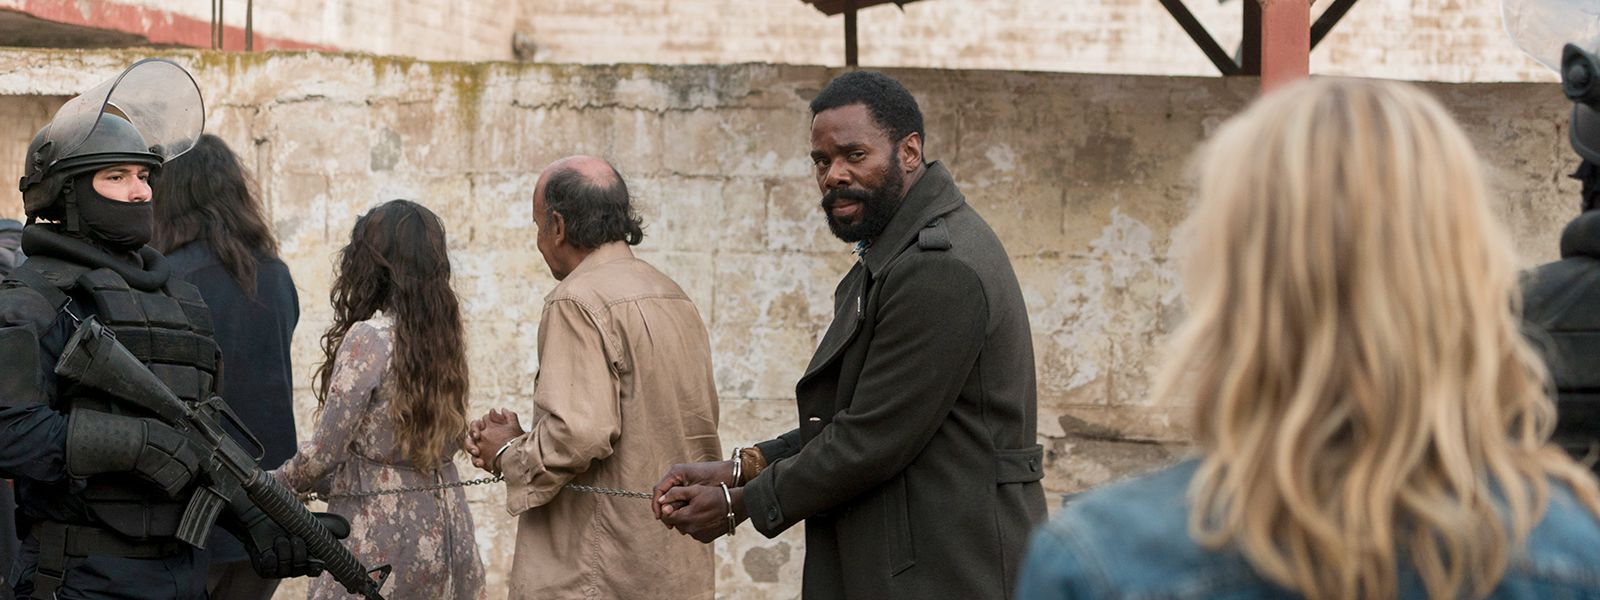 fear-the-walking-dead-episode-310-strand-domingo-post-800×600